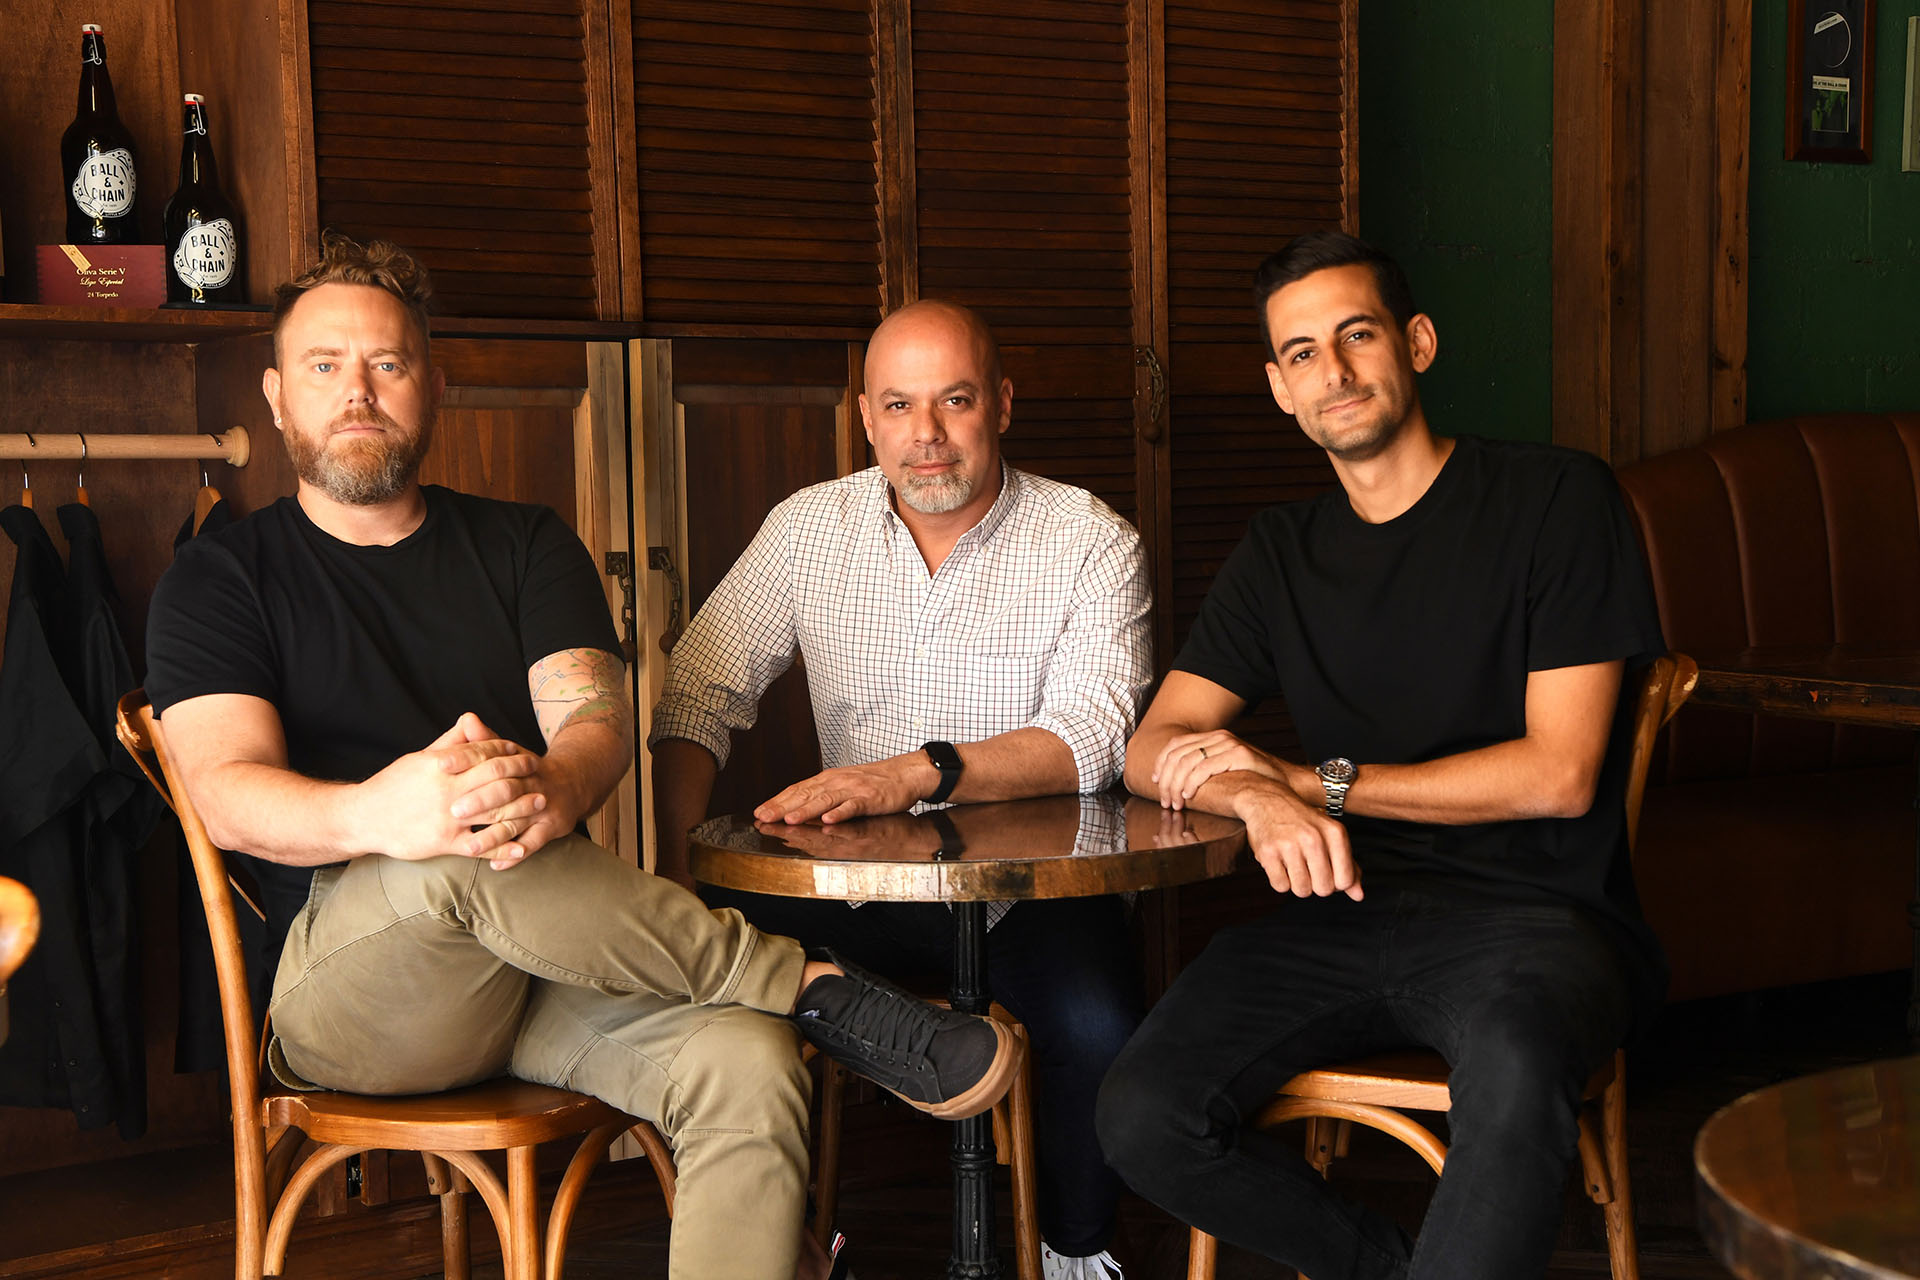 From left to right: Jason Wolske, Executive Creative Director - Luis Casamayor, Co-Founder, President & Chief Creative Officer - Danny Alvarez, Executive Creative Director